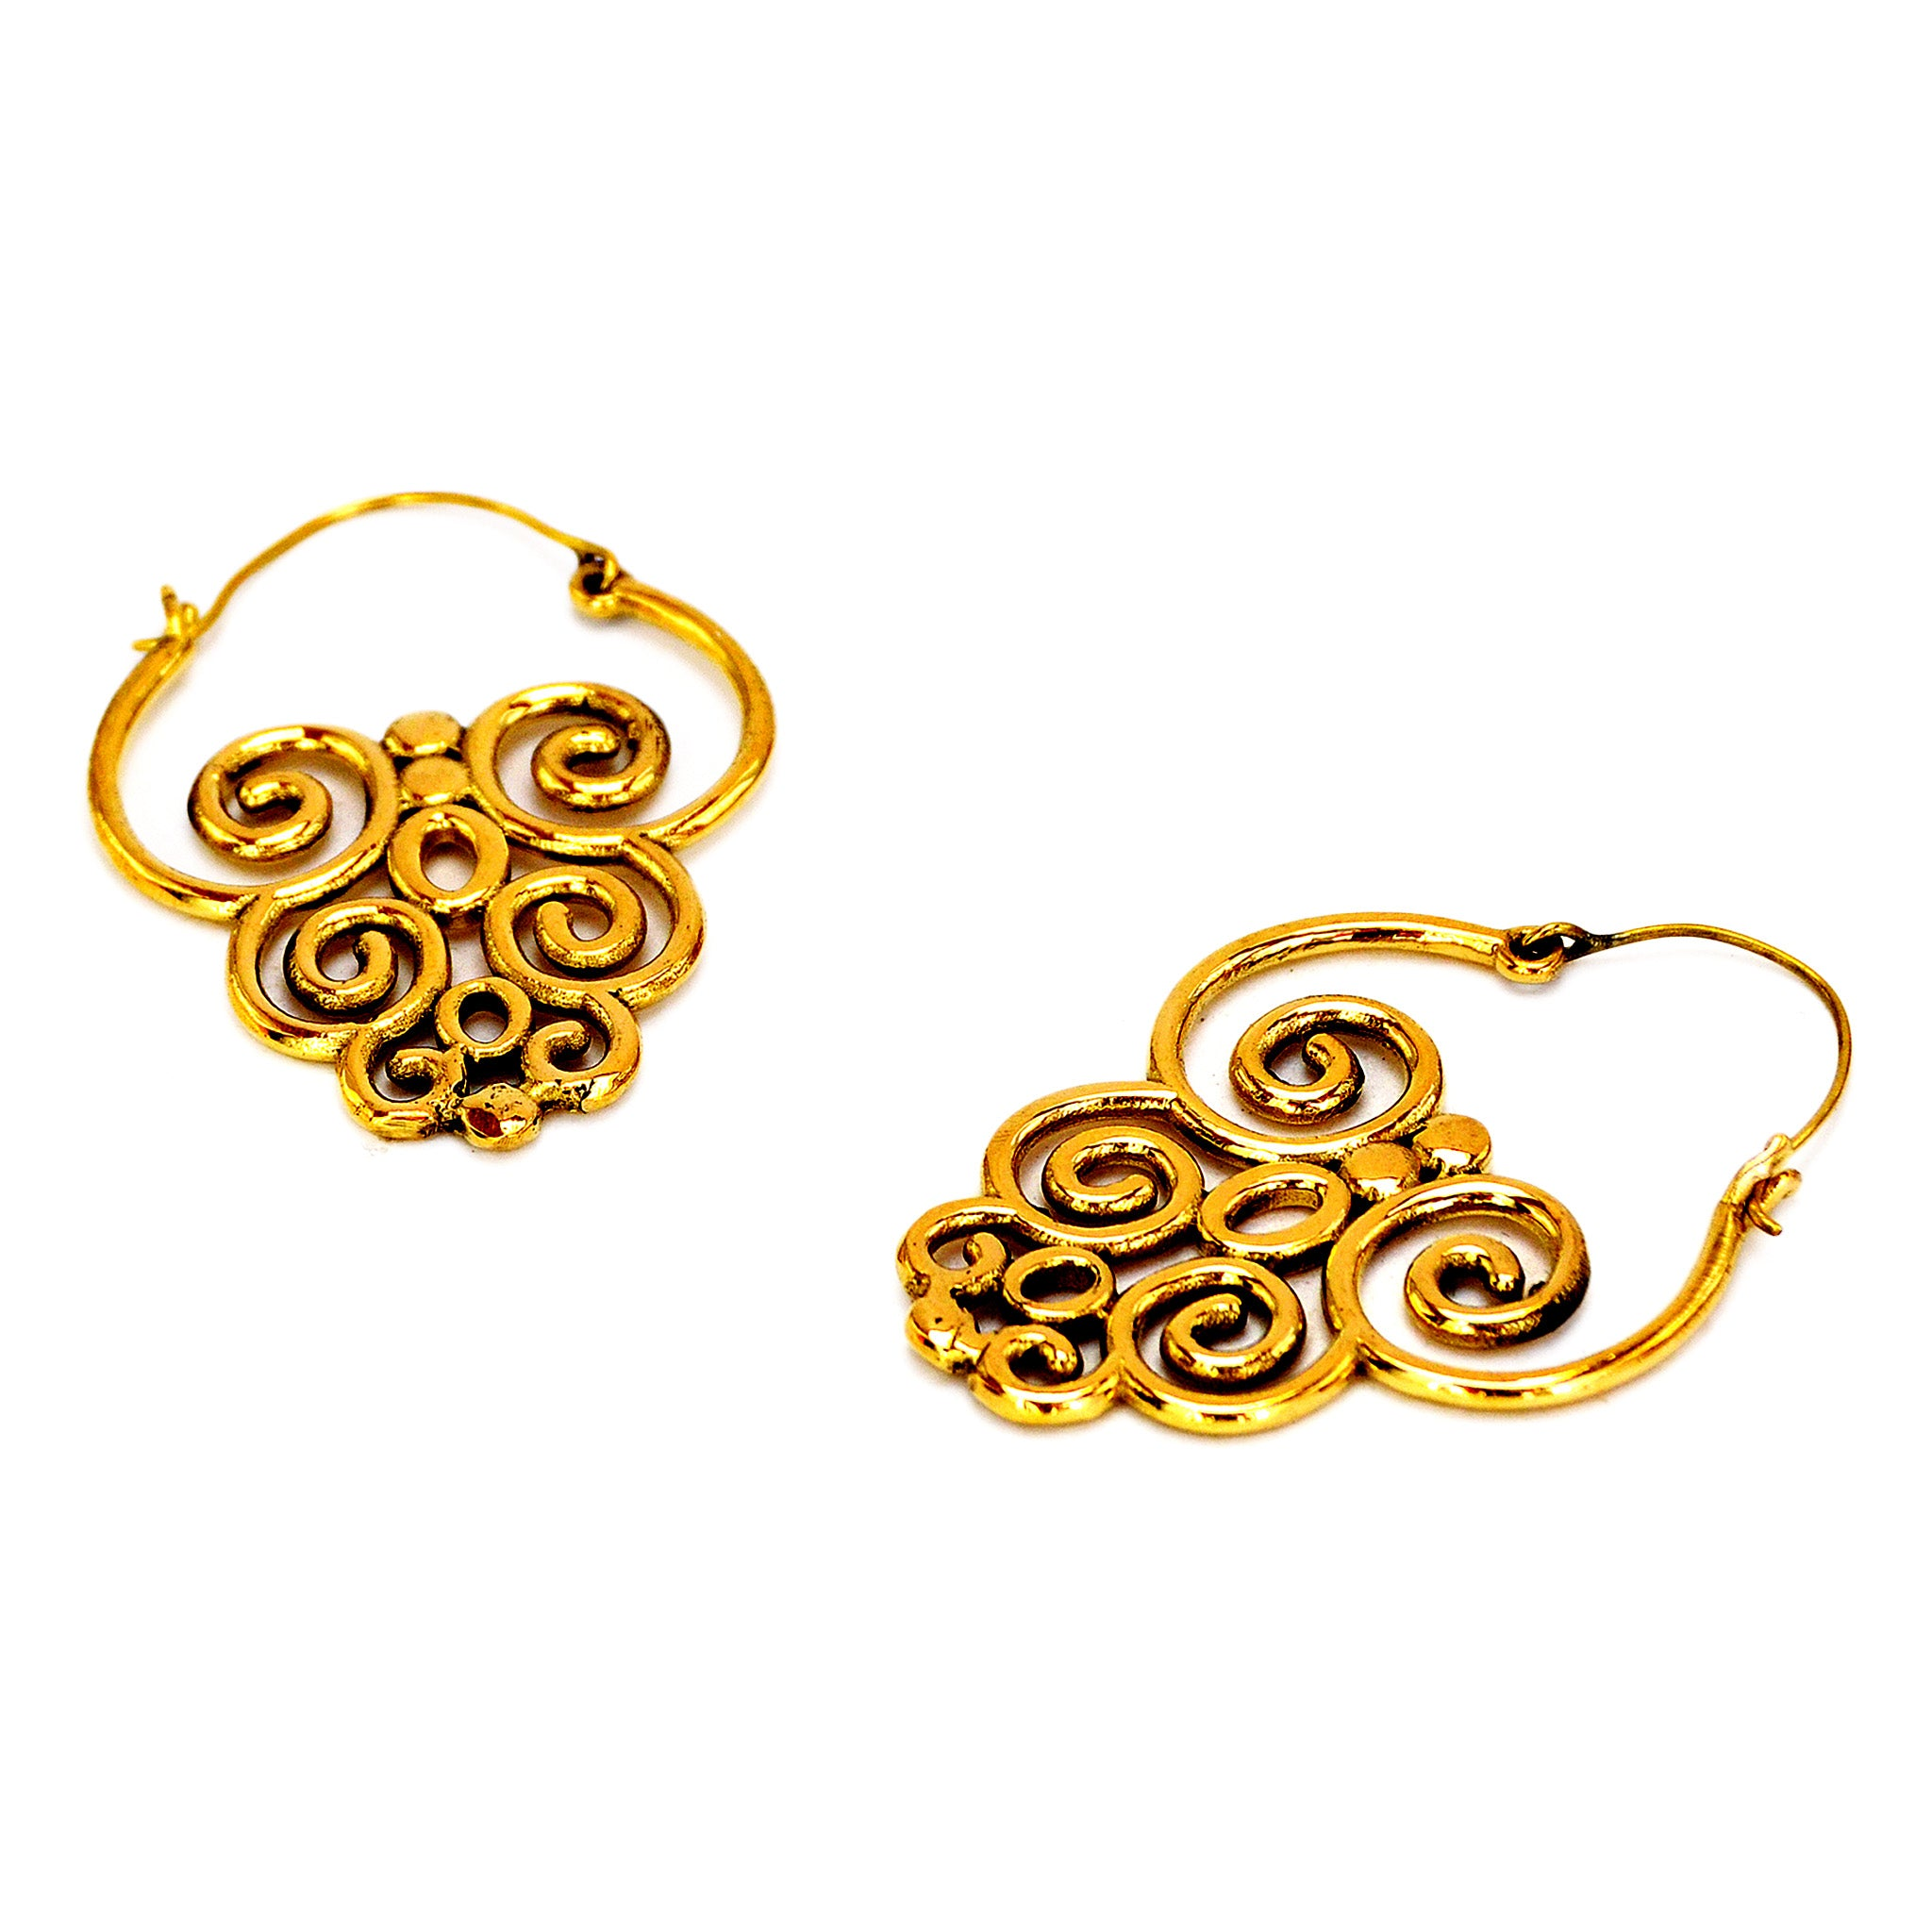 Ethnic festival earrings